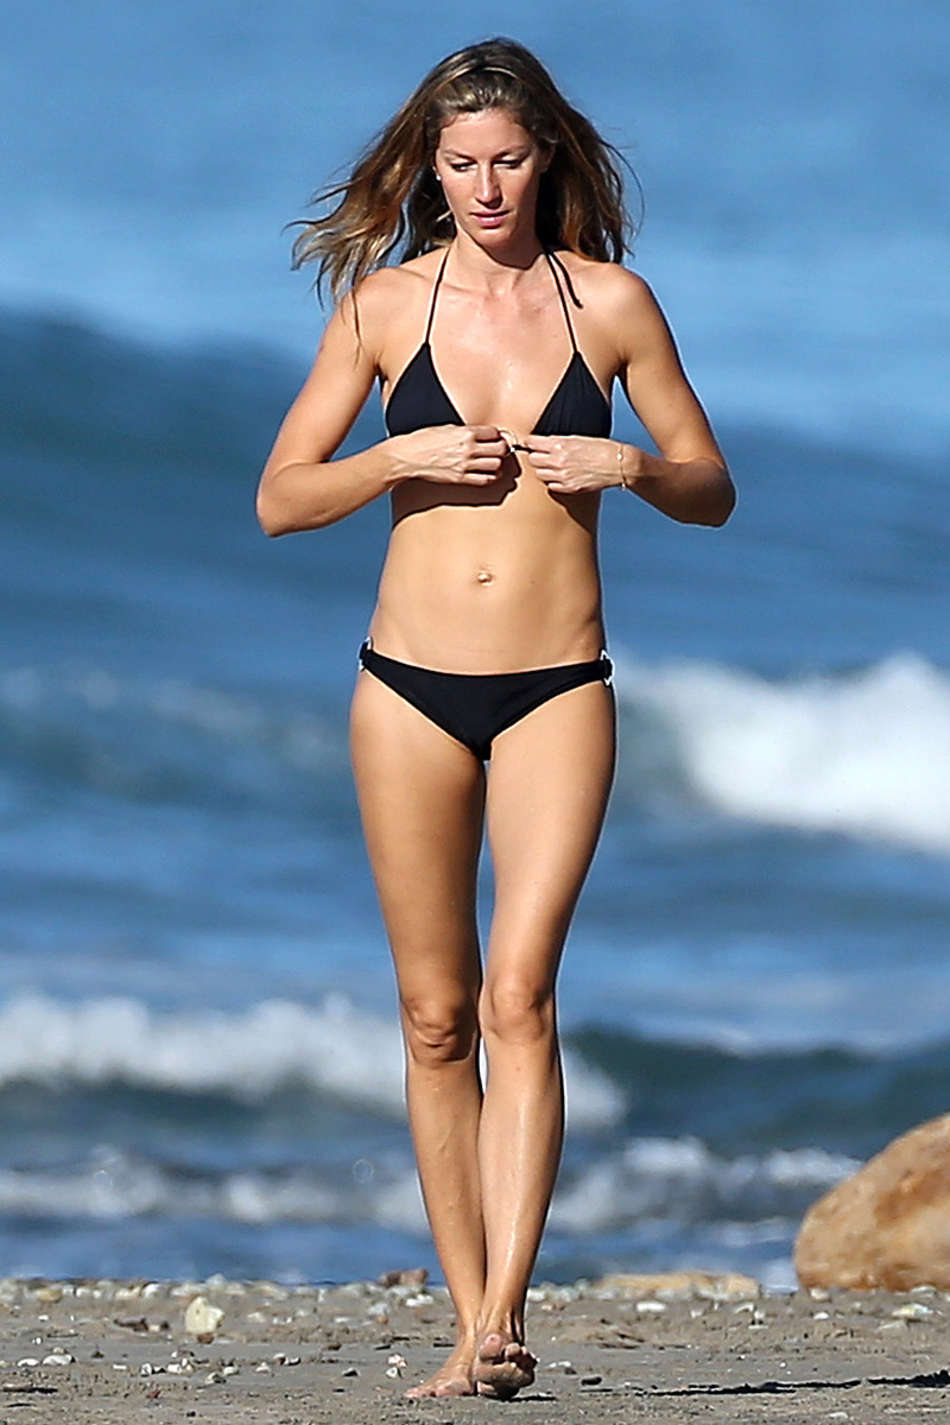 Gisele Bundchen Wearing Bikini in Costa Rica